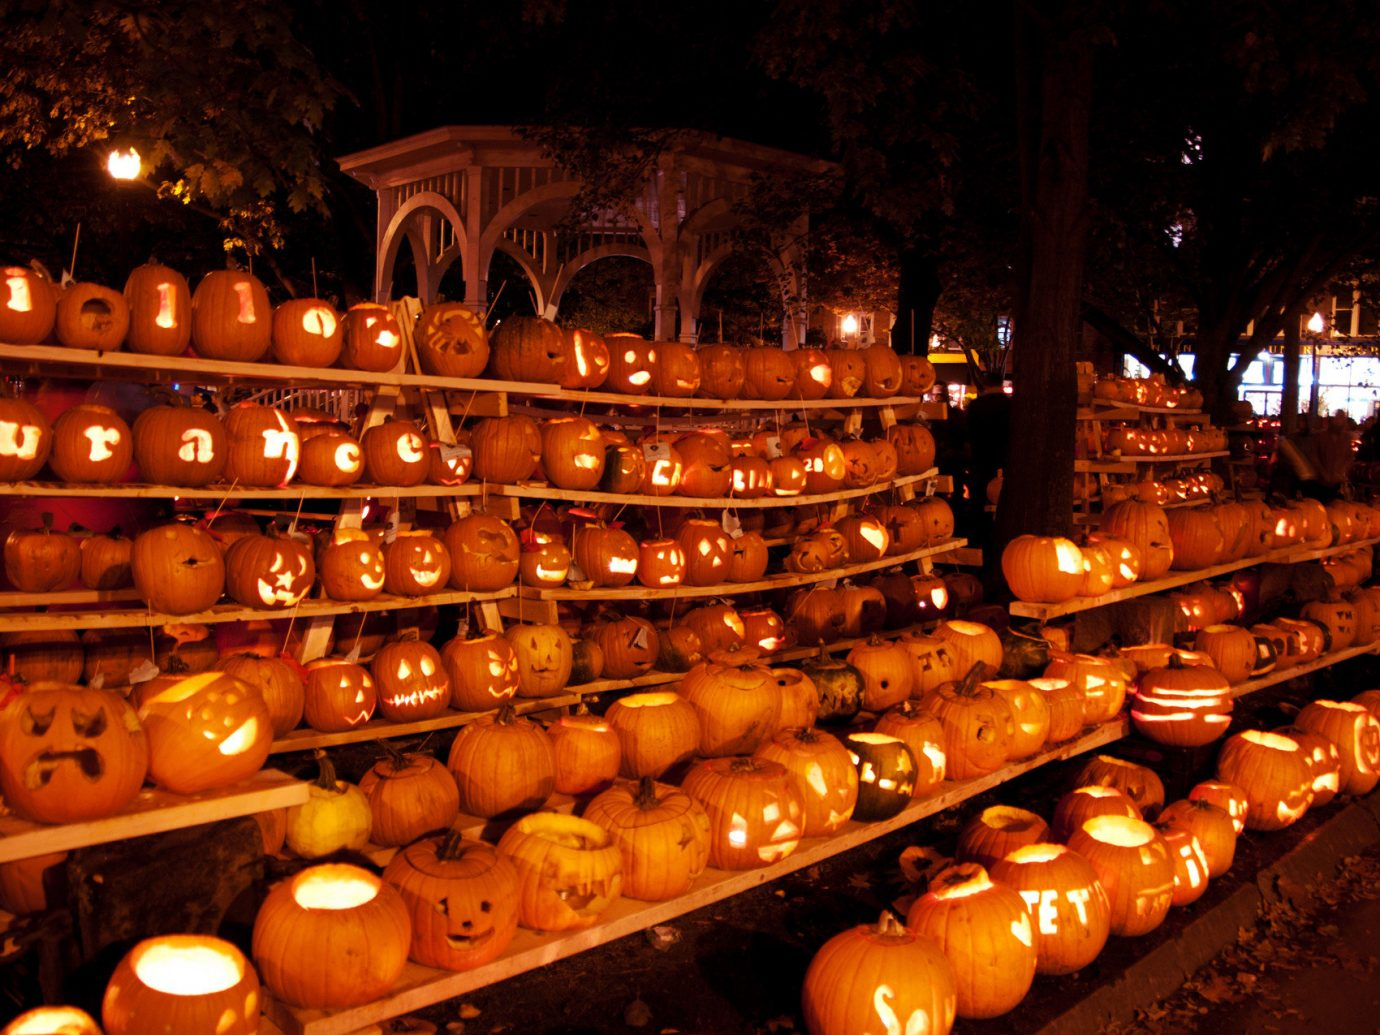 exhibit festive glow halloween holiday lights night night lights pumpkins Trip Ideas outdoor evening bunch several